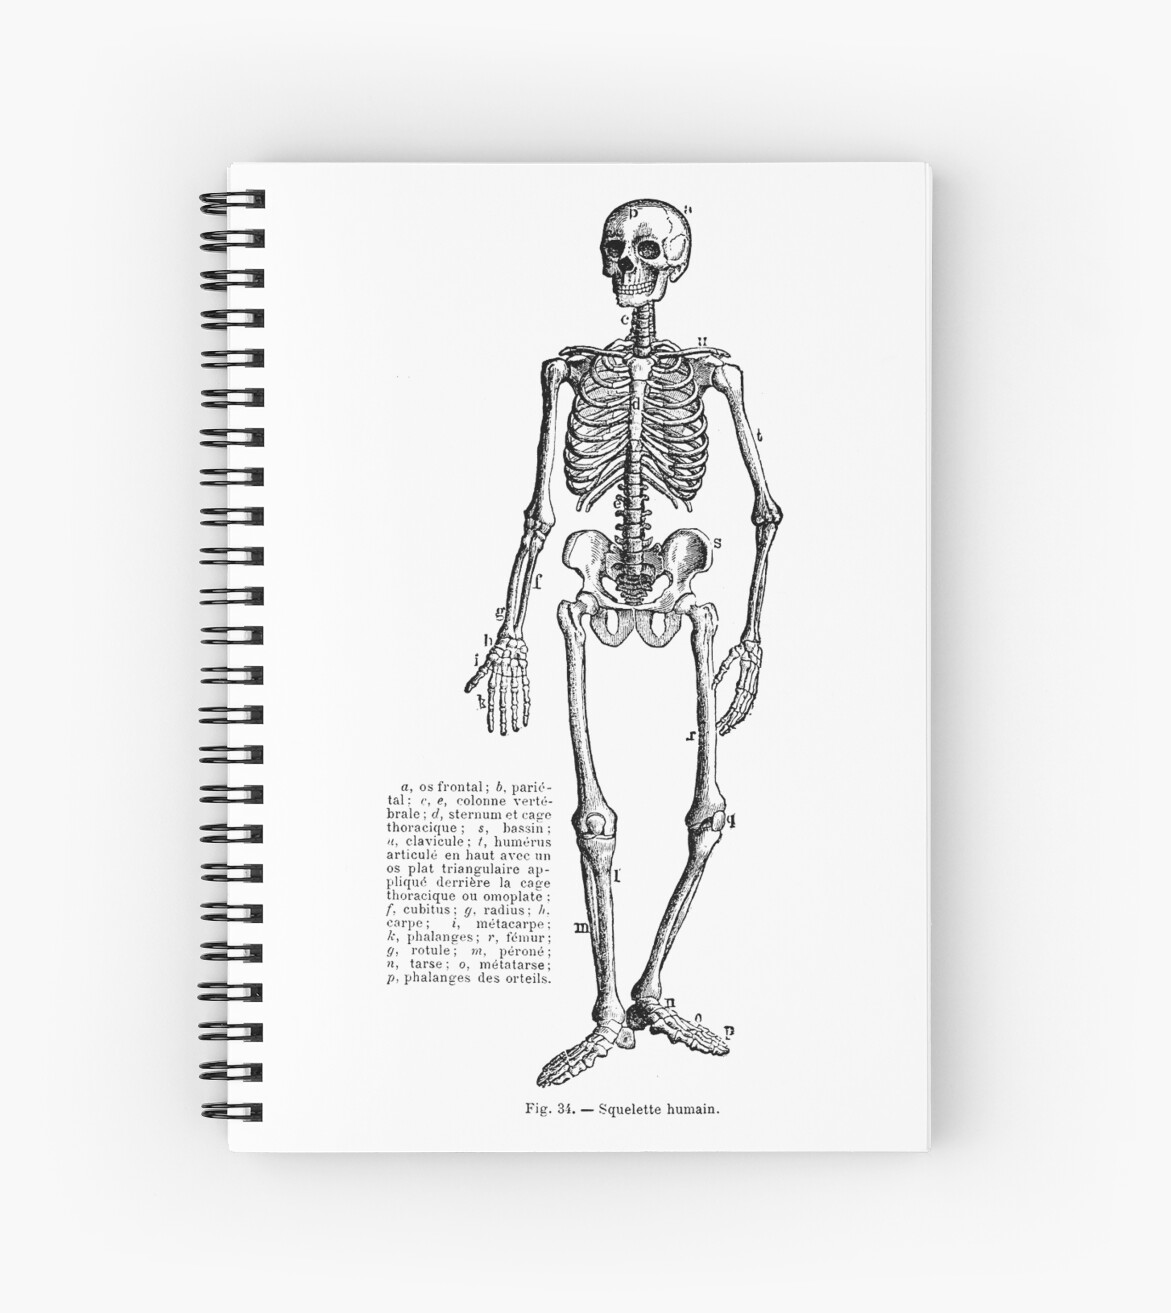 Renaissance Human Anatomy Skeleton Spiral Notebooks By Pixelchicken